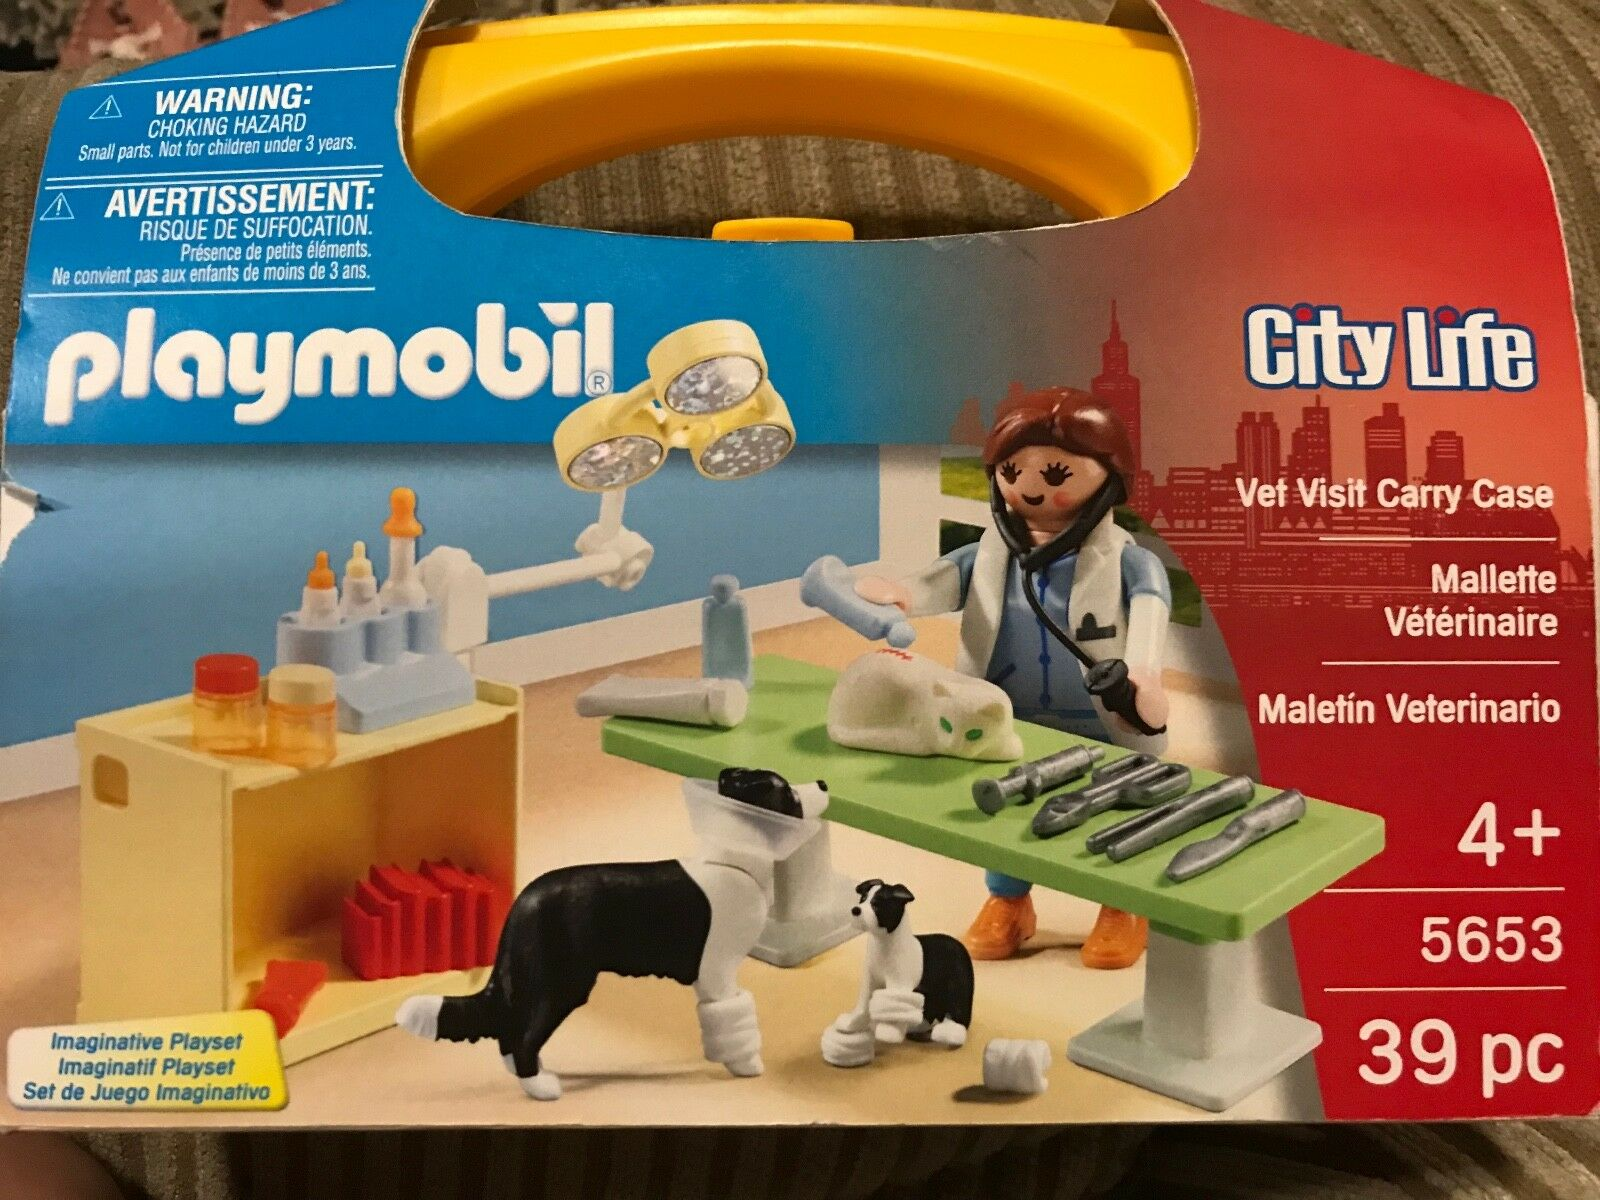 NEW Playmobile City Life Vet Visit Carry Case, ages ages ages 4+ af86c9